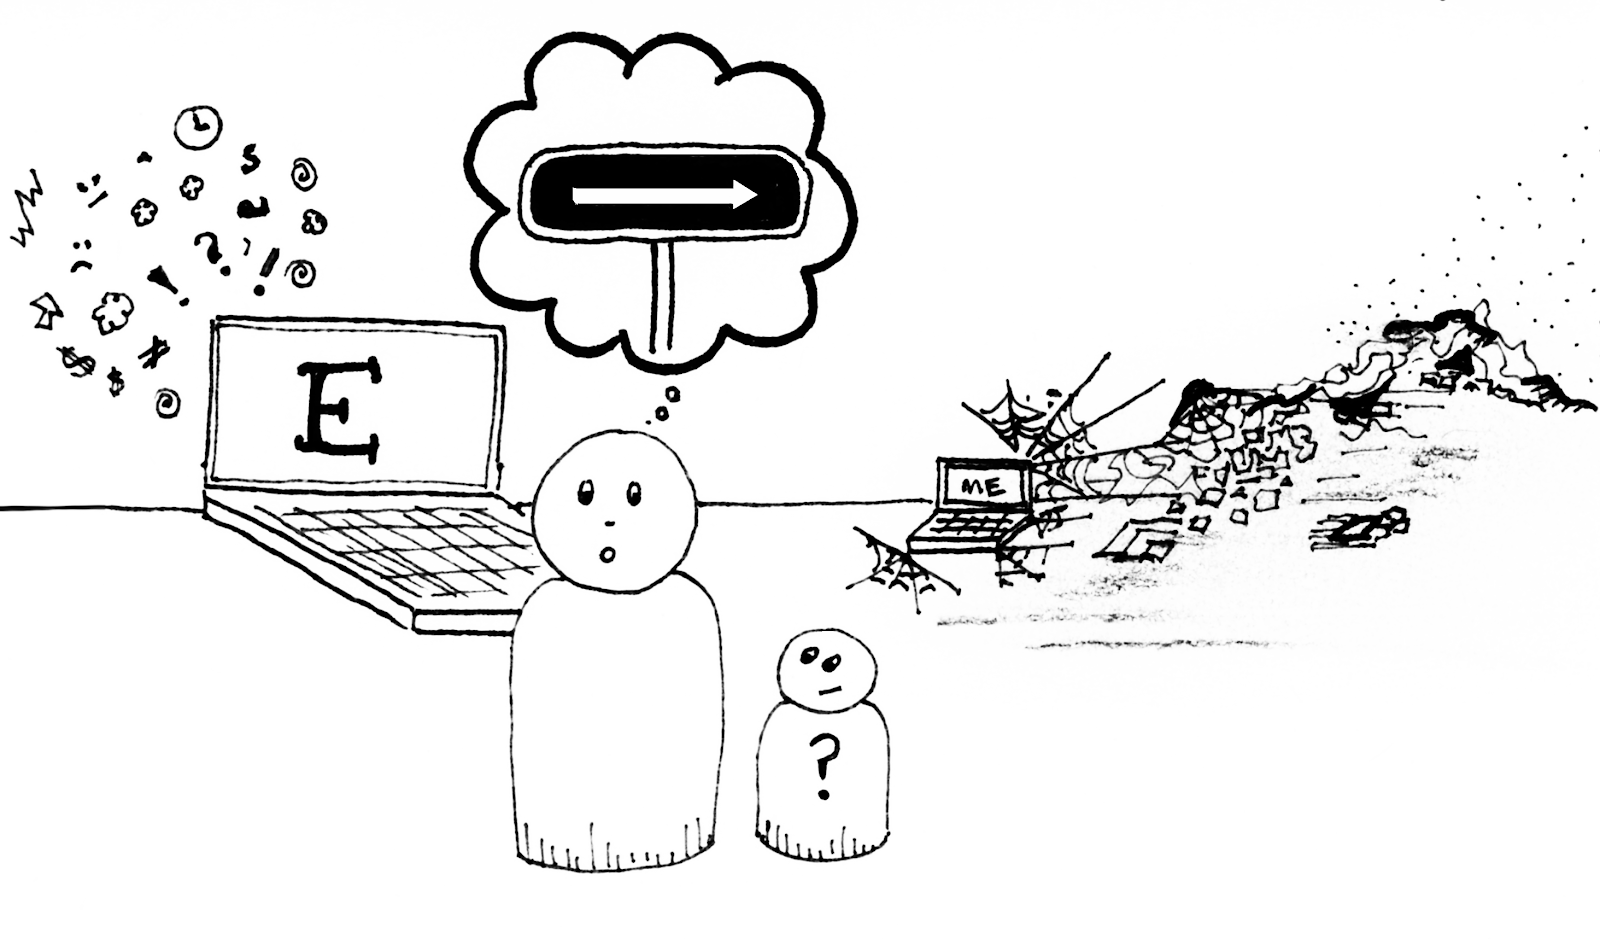 """A shocked looking weeble person with a smaller toddler weeble person with a questioning look stand amidst chaos. The laptop labeled """"E"""" is surrounded by the visual language of chaos while the laptop labeled """"me"""" sit amidst cobwebs and piles of trash"""